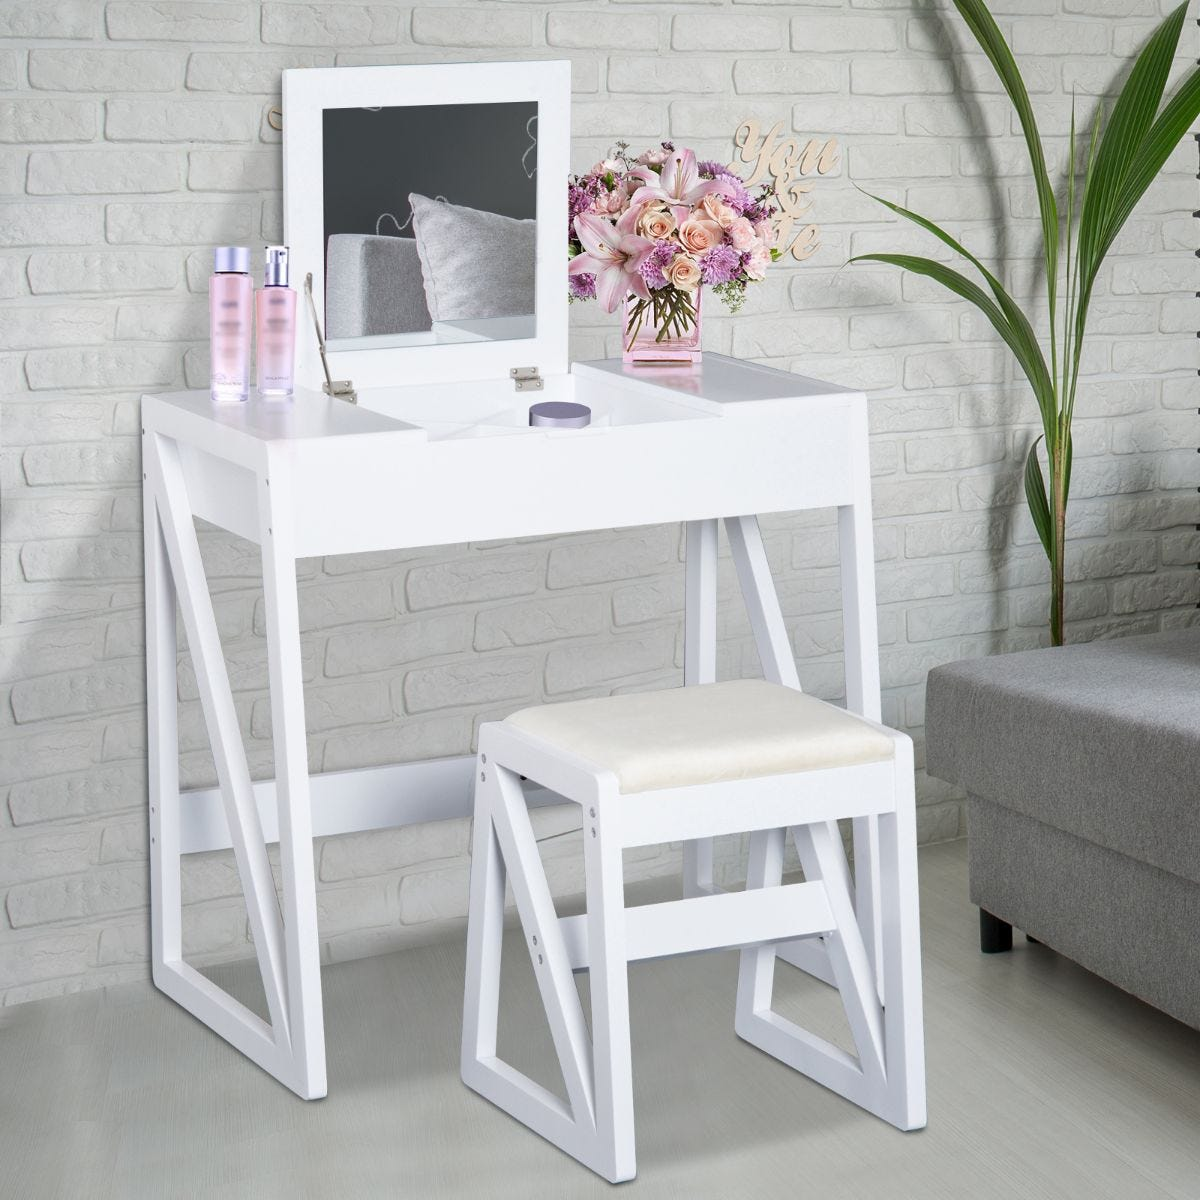 Compact Two In One Dressing Table Desk Flip Up Mirror 2 Drawers With Nesting Stool White